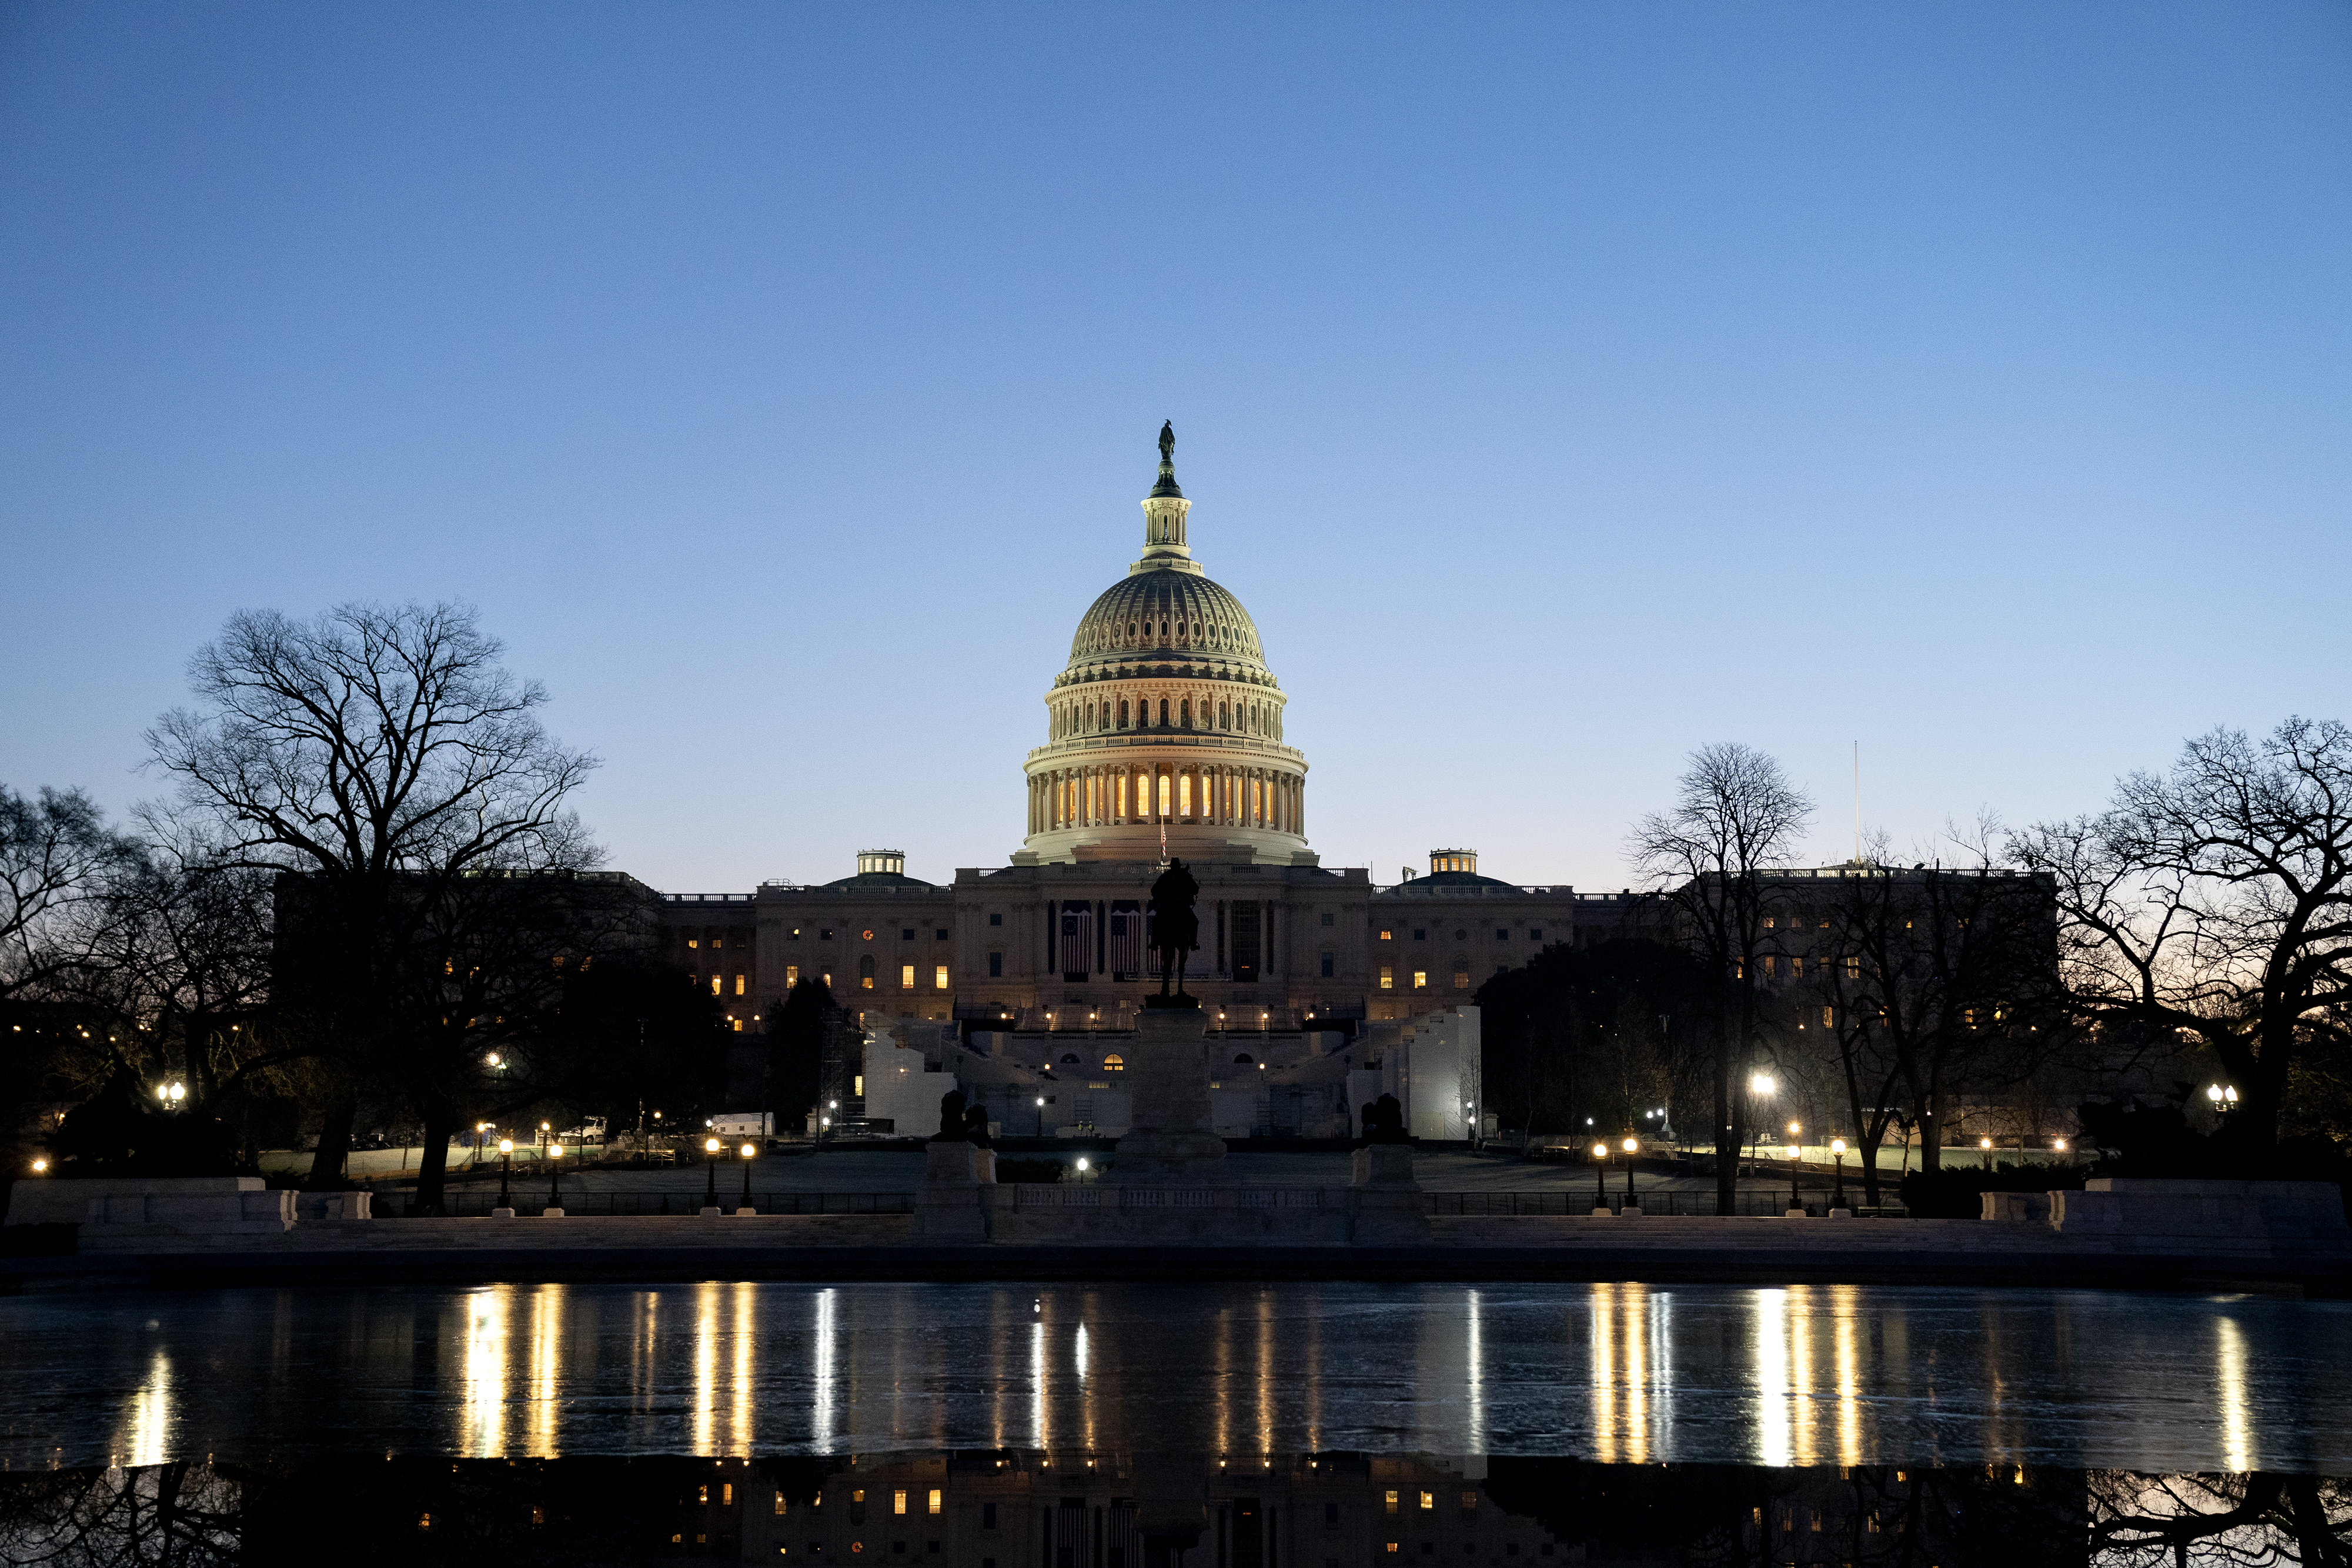 House Votes On Resolution Calling On Vice President Pence To Invoke 25th Amendment